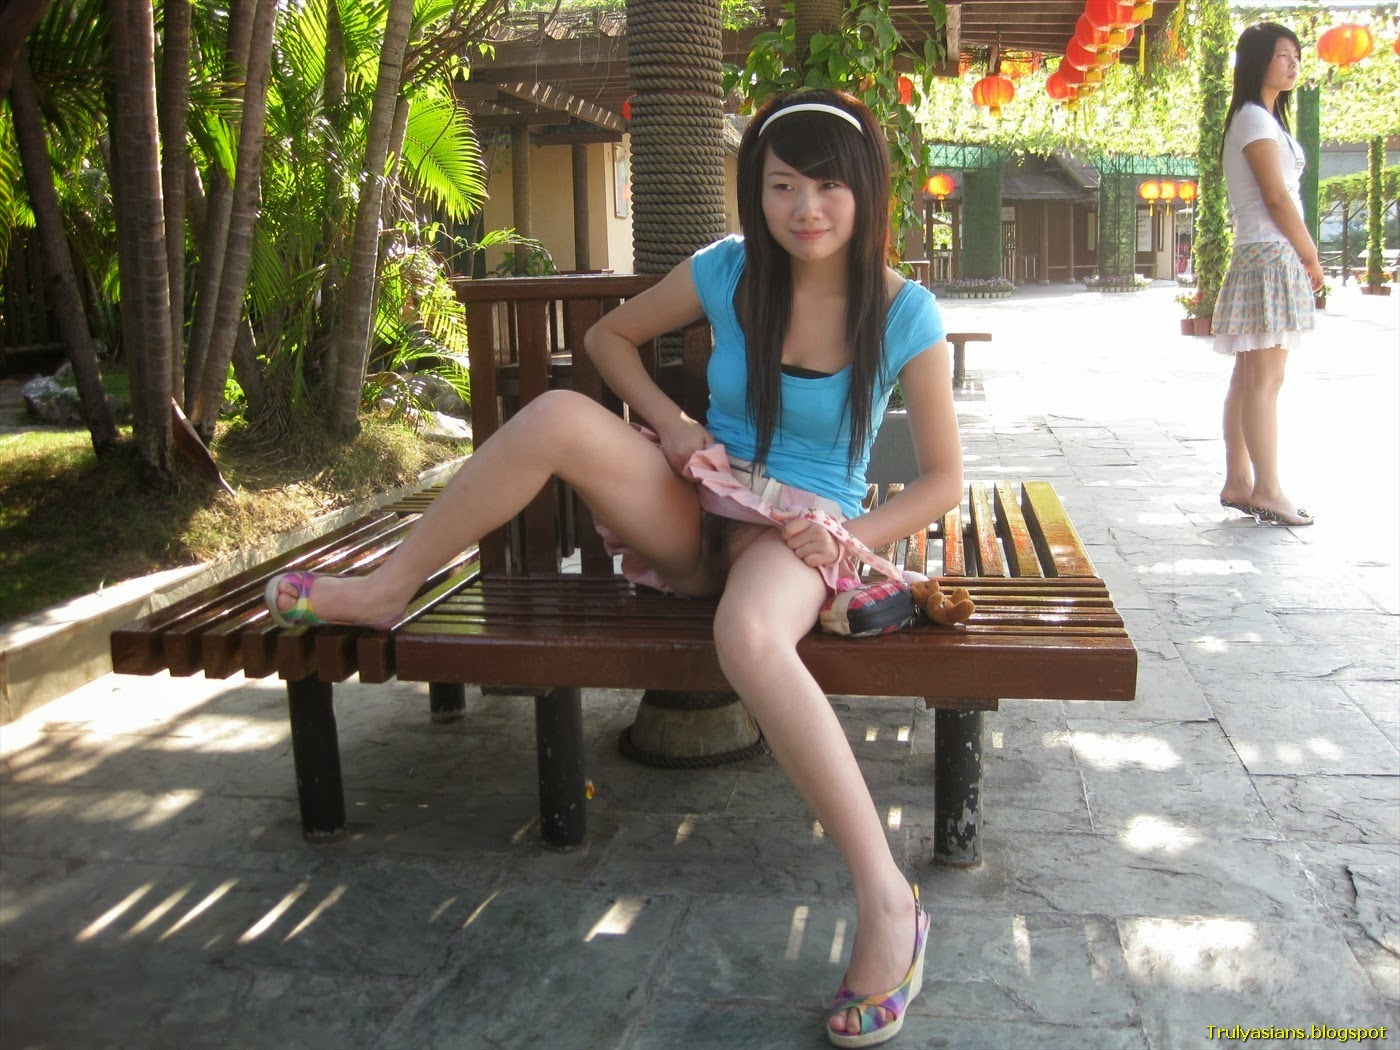 Chinese teen busty fuck pic hot sorry, can